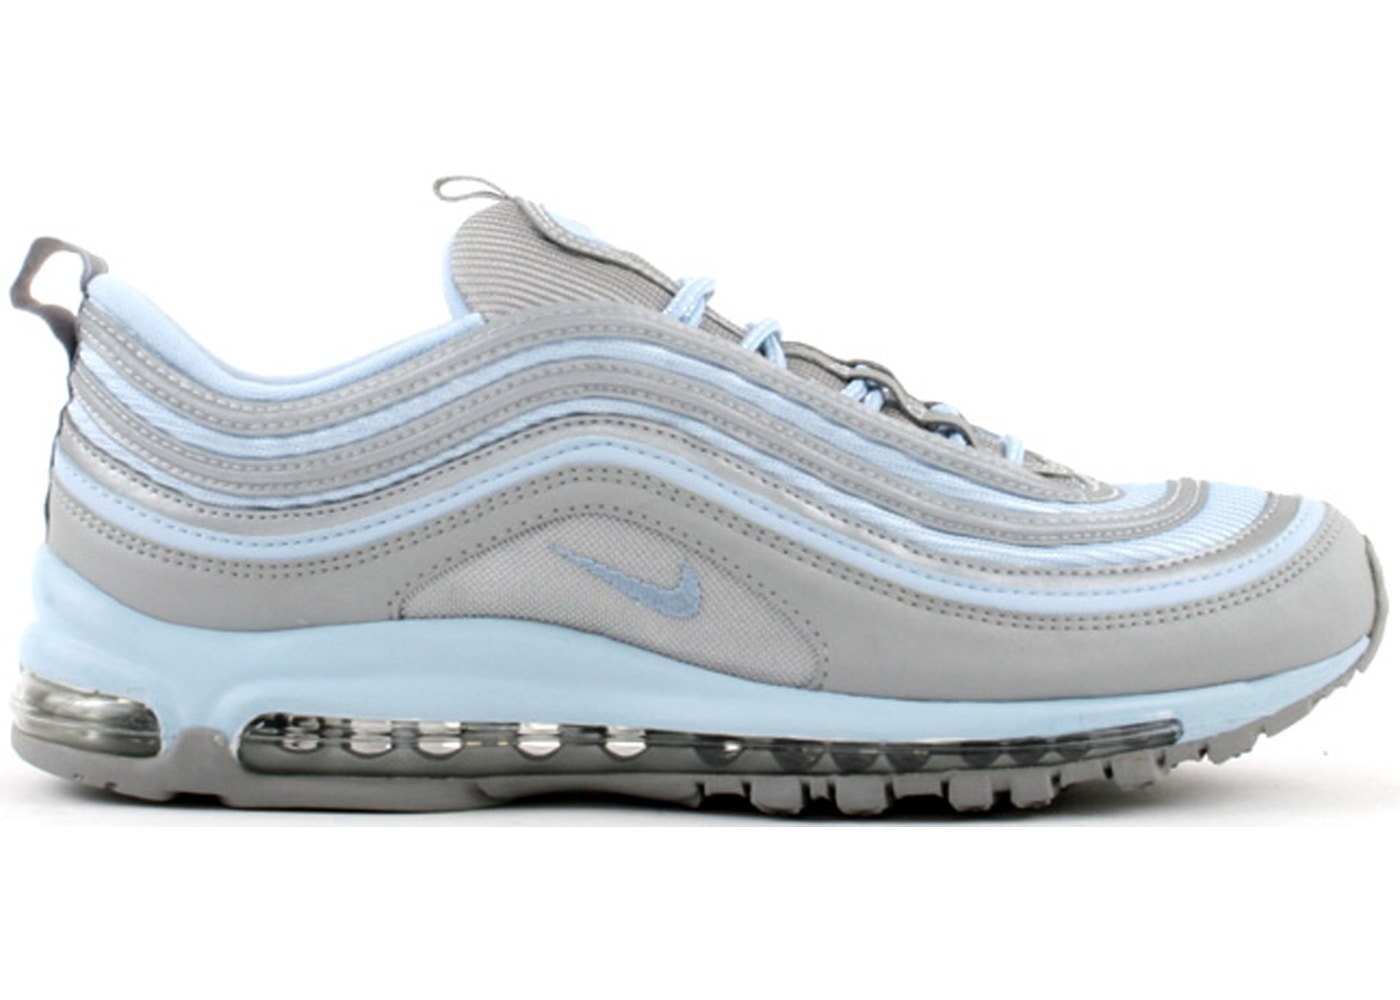 Nike Air Max 97 Metallic Silver Ice Blue W 605173 041